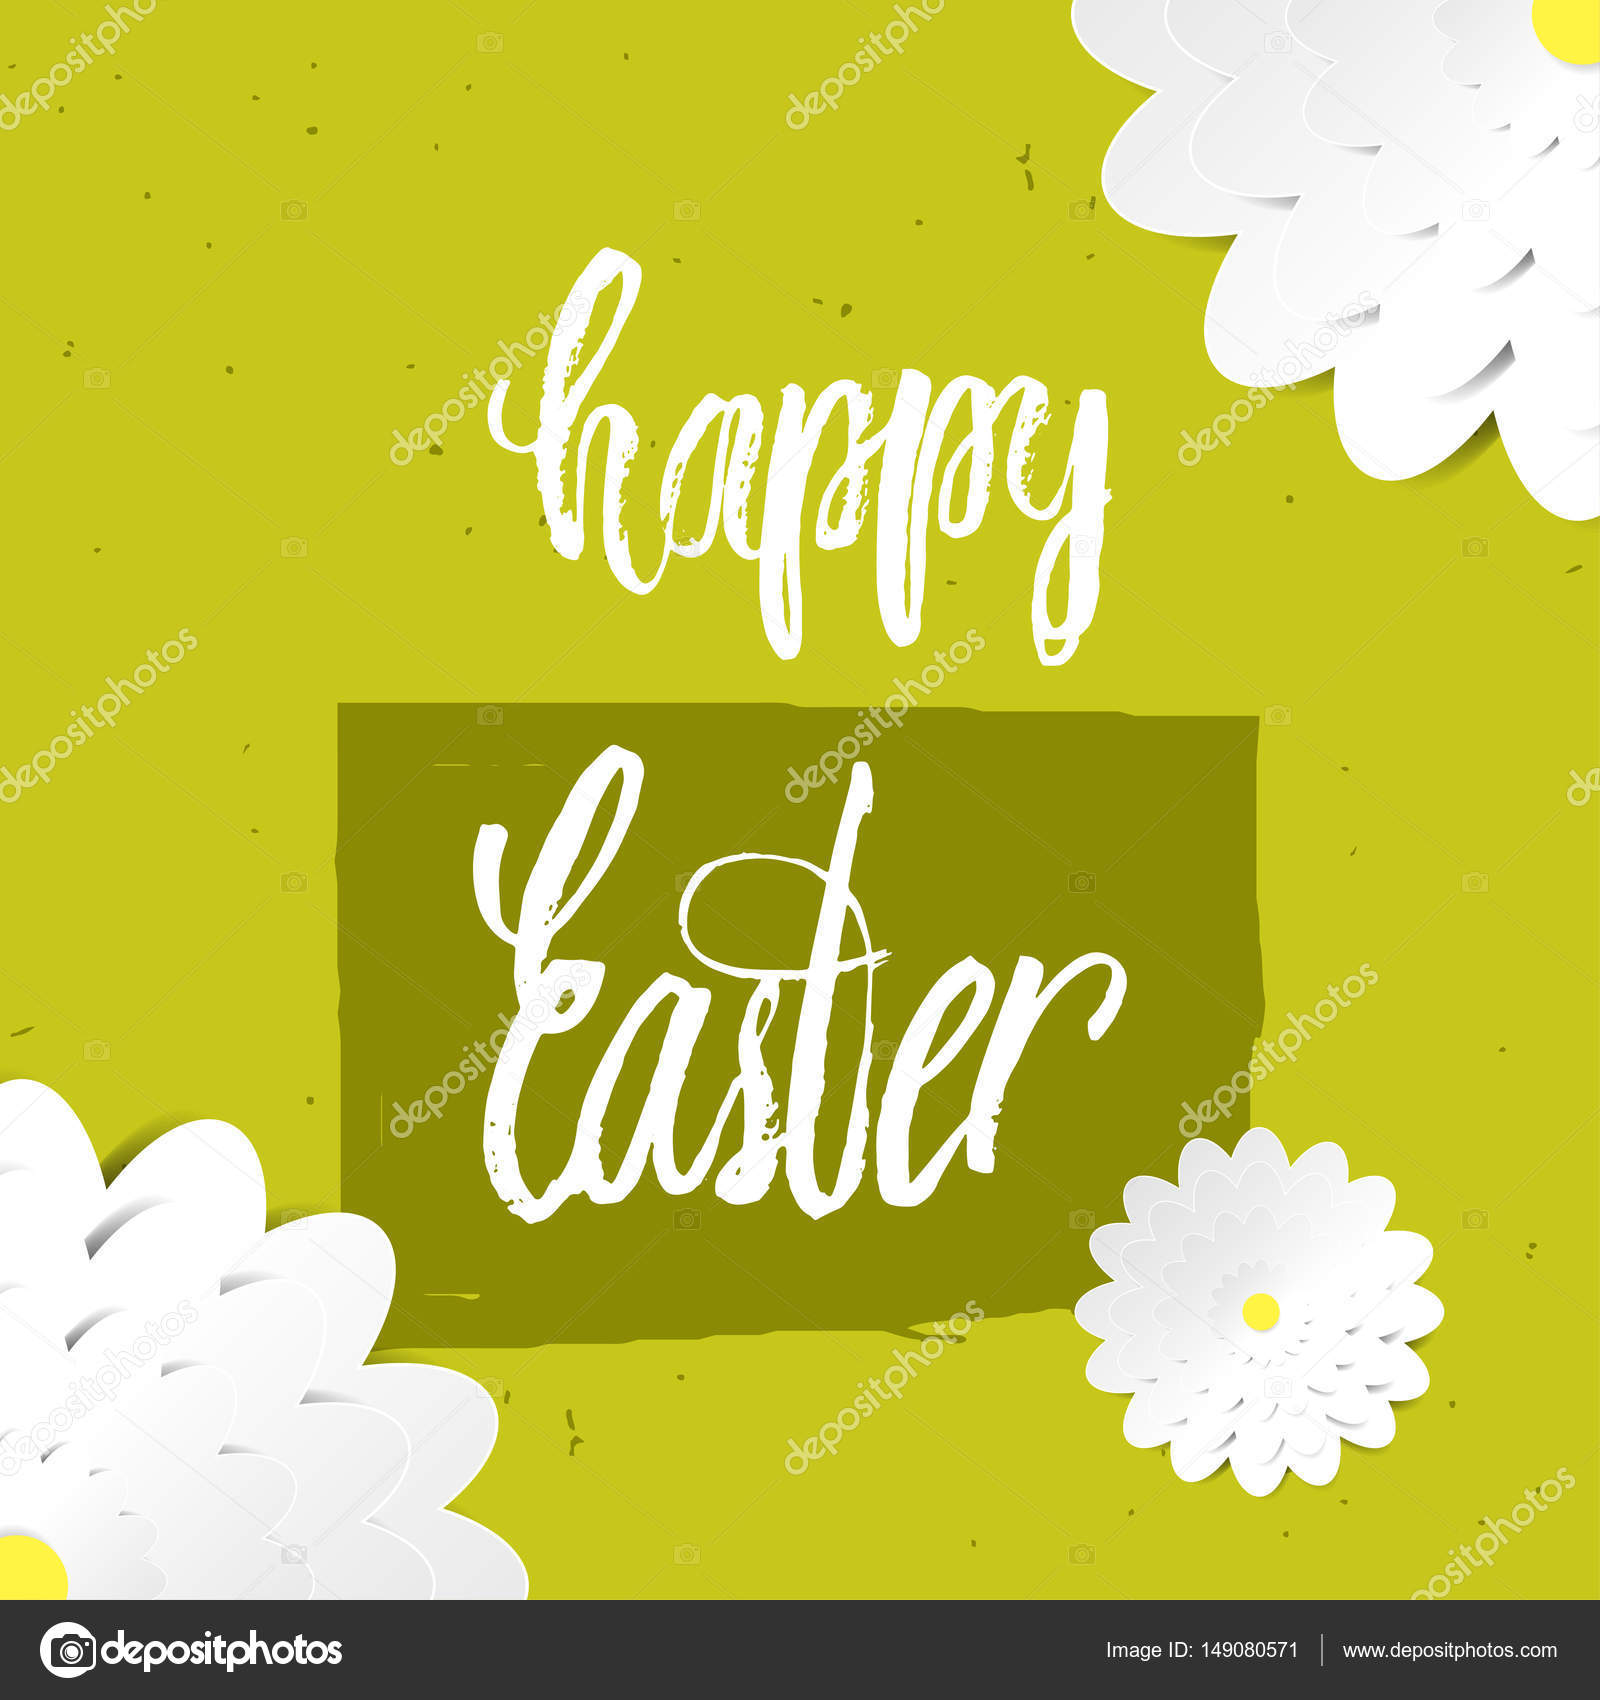 Quote happy easter day background design the design of the label quote happy easter day background design the design of the label easter greeting card kristyandbryce Images